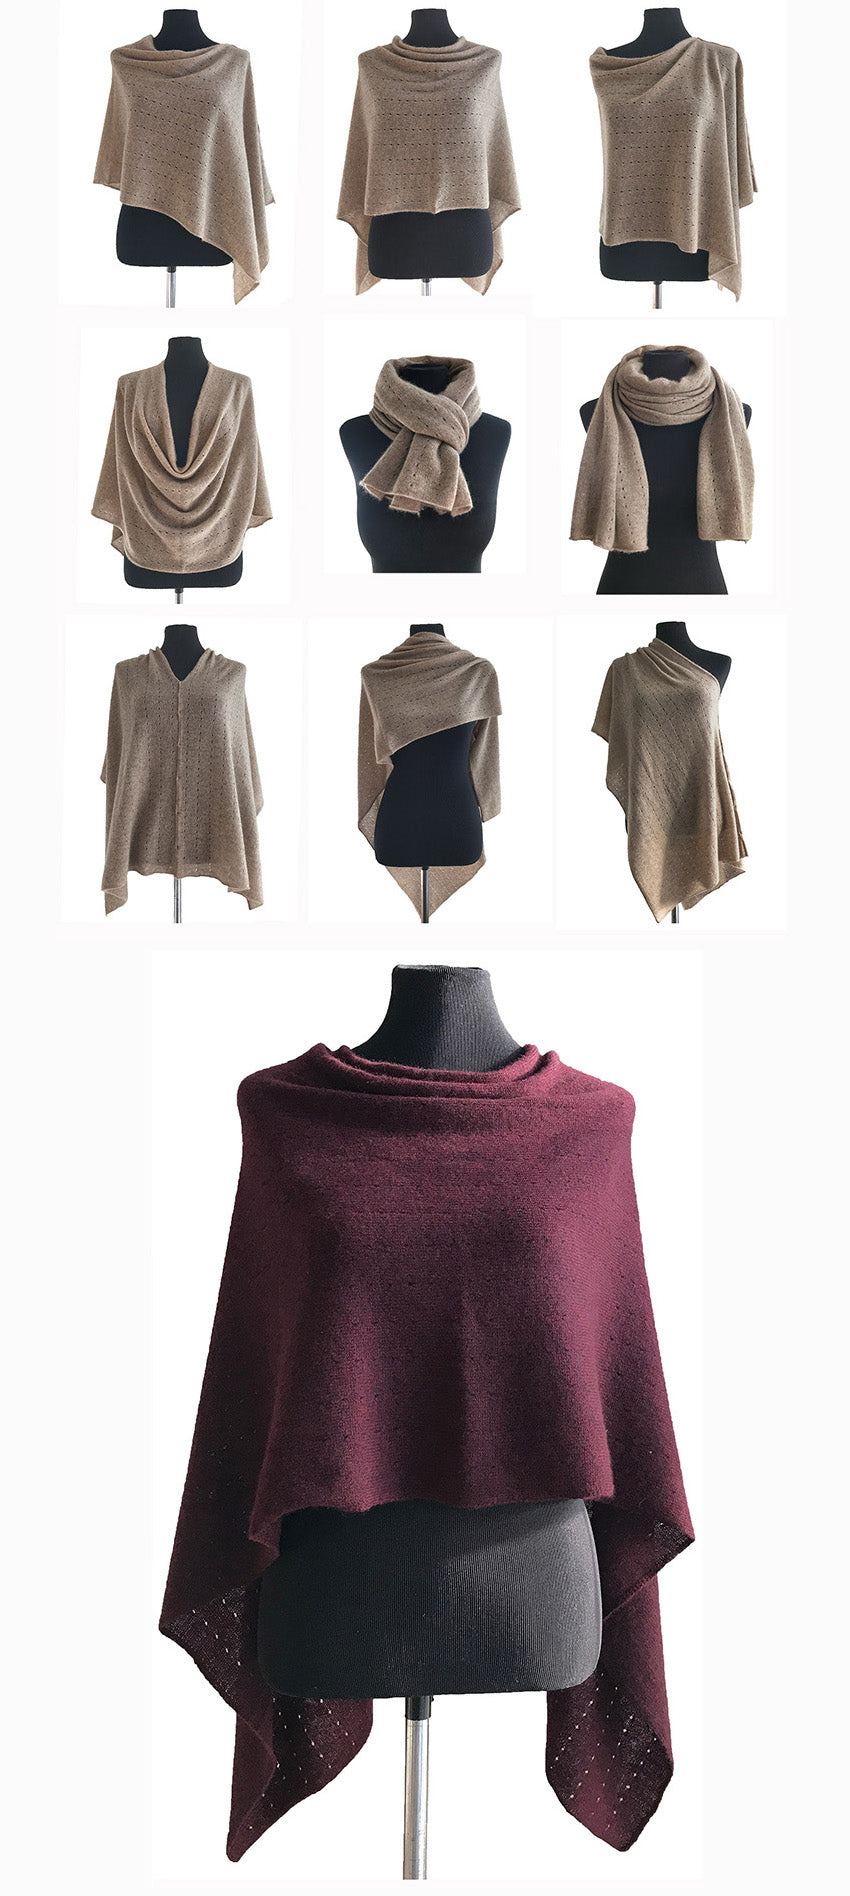 Multiwear Cashmere Poncho in Burgundy red